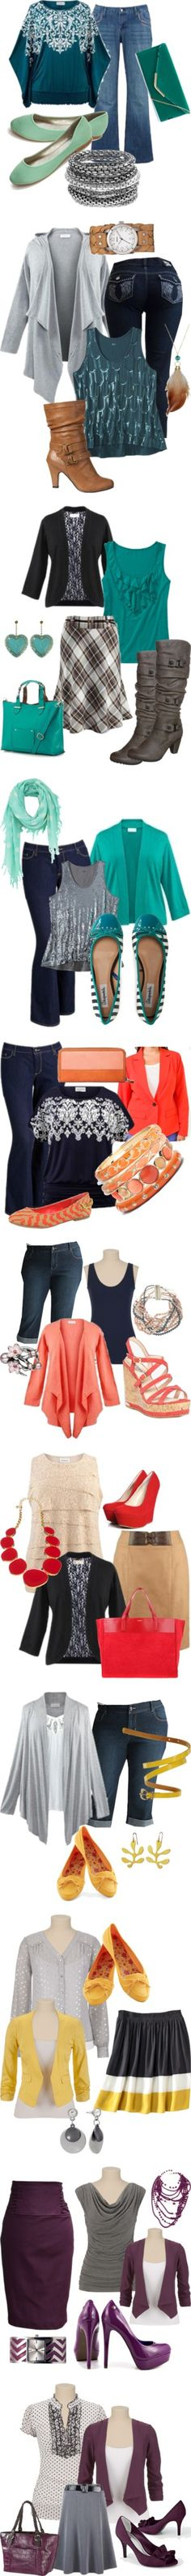 """plus size fashions"" by sarubbia on Polyvore"